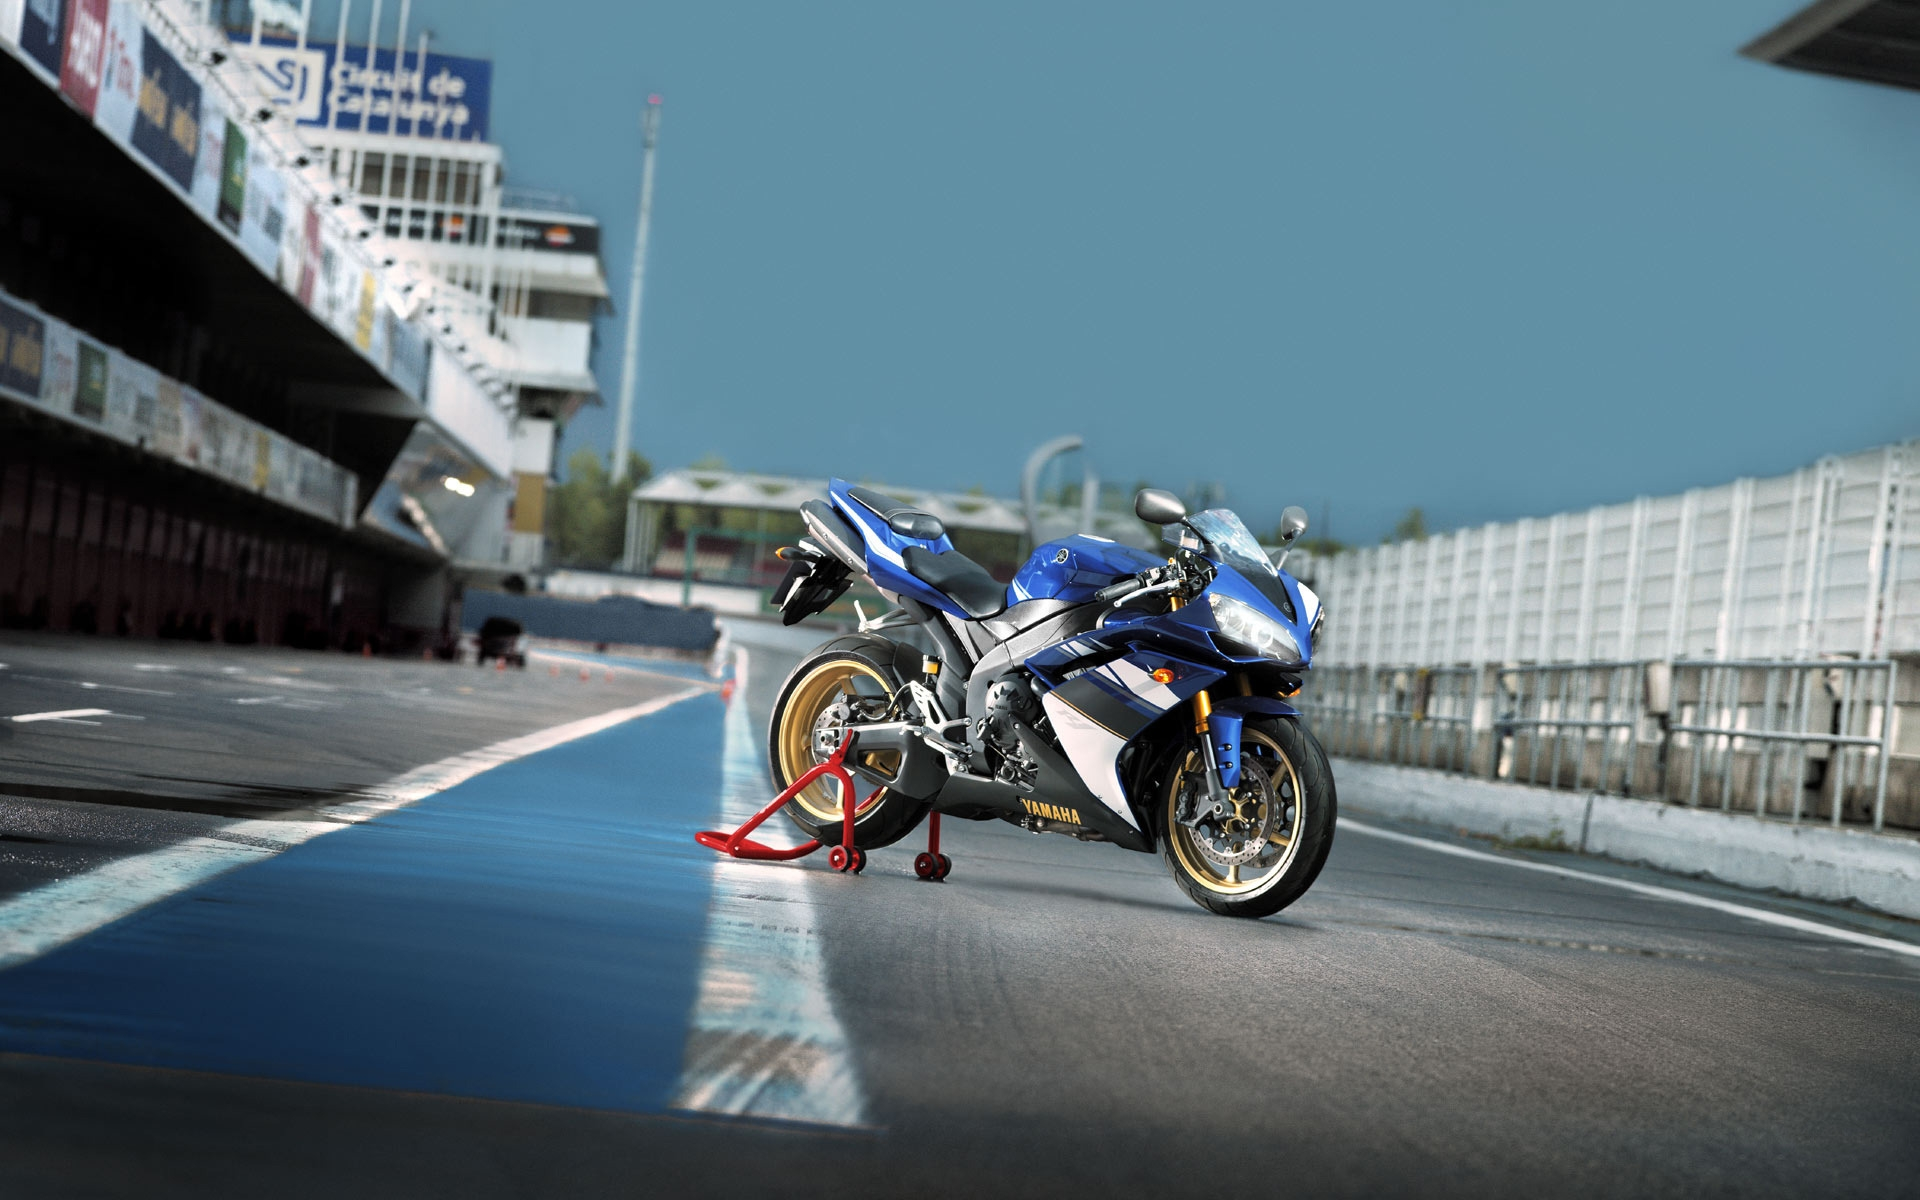 Yamaha YZF-R1 for 1920 x 1200 widescreen resolution